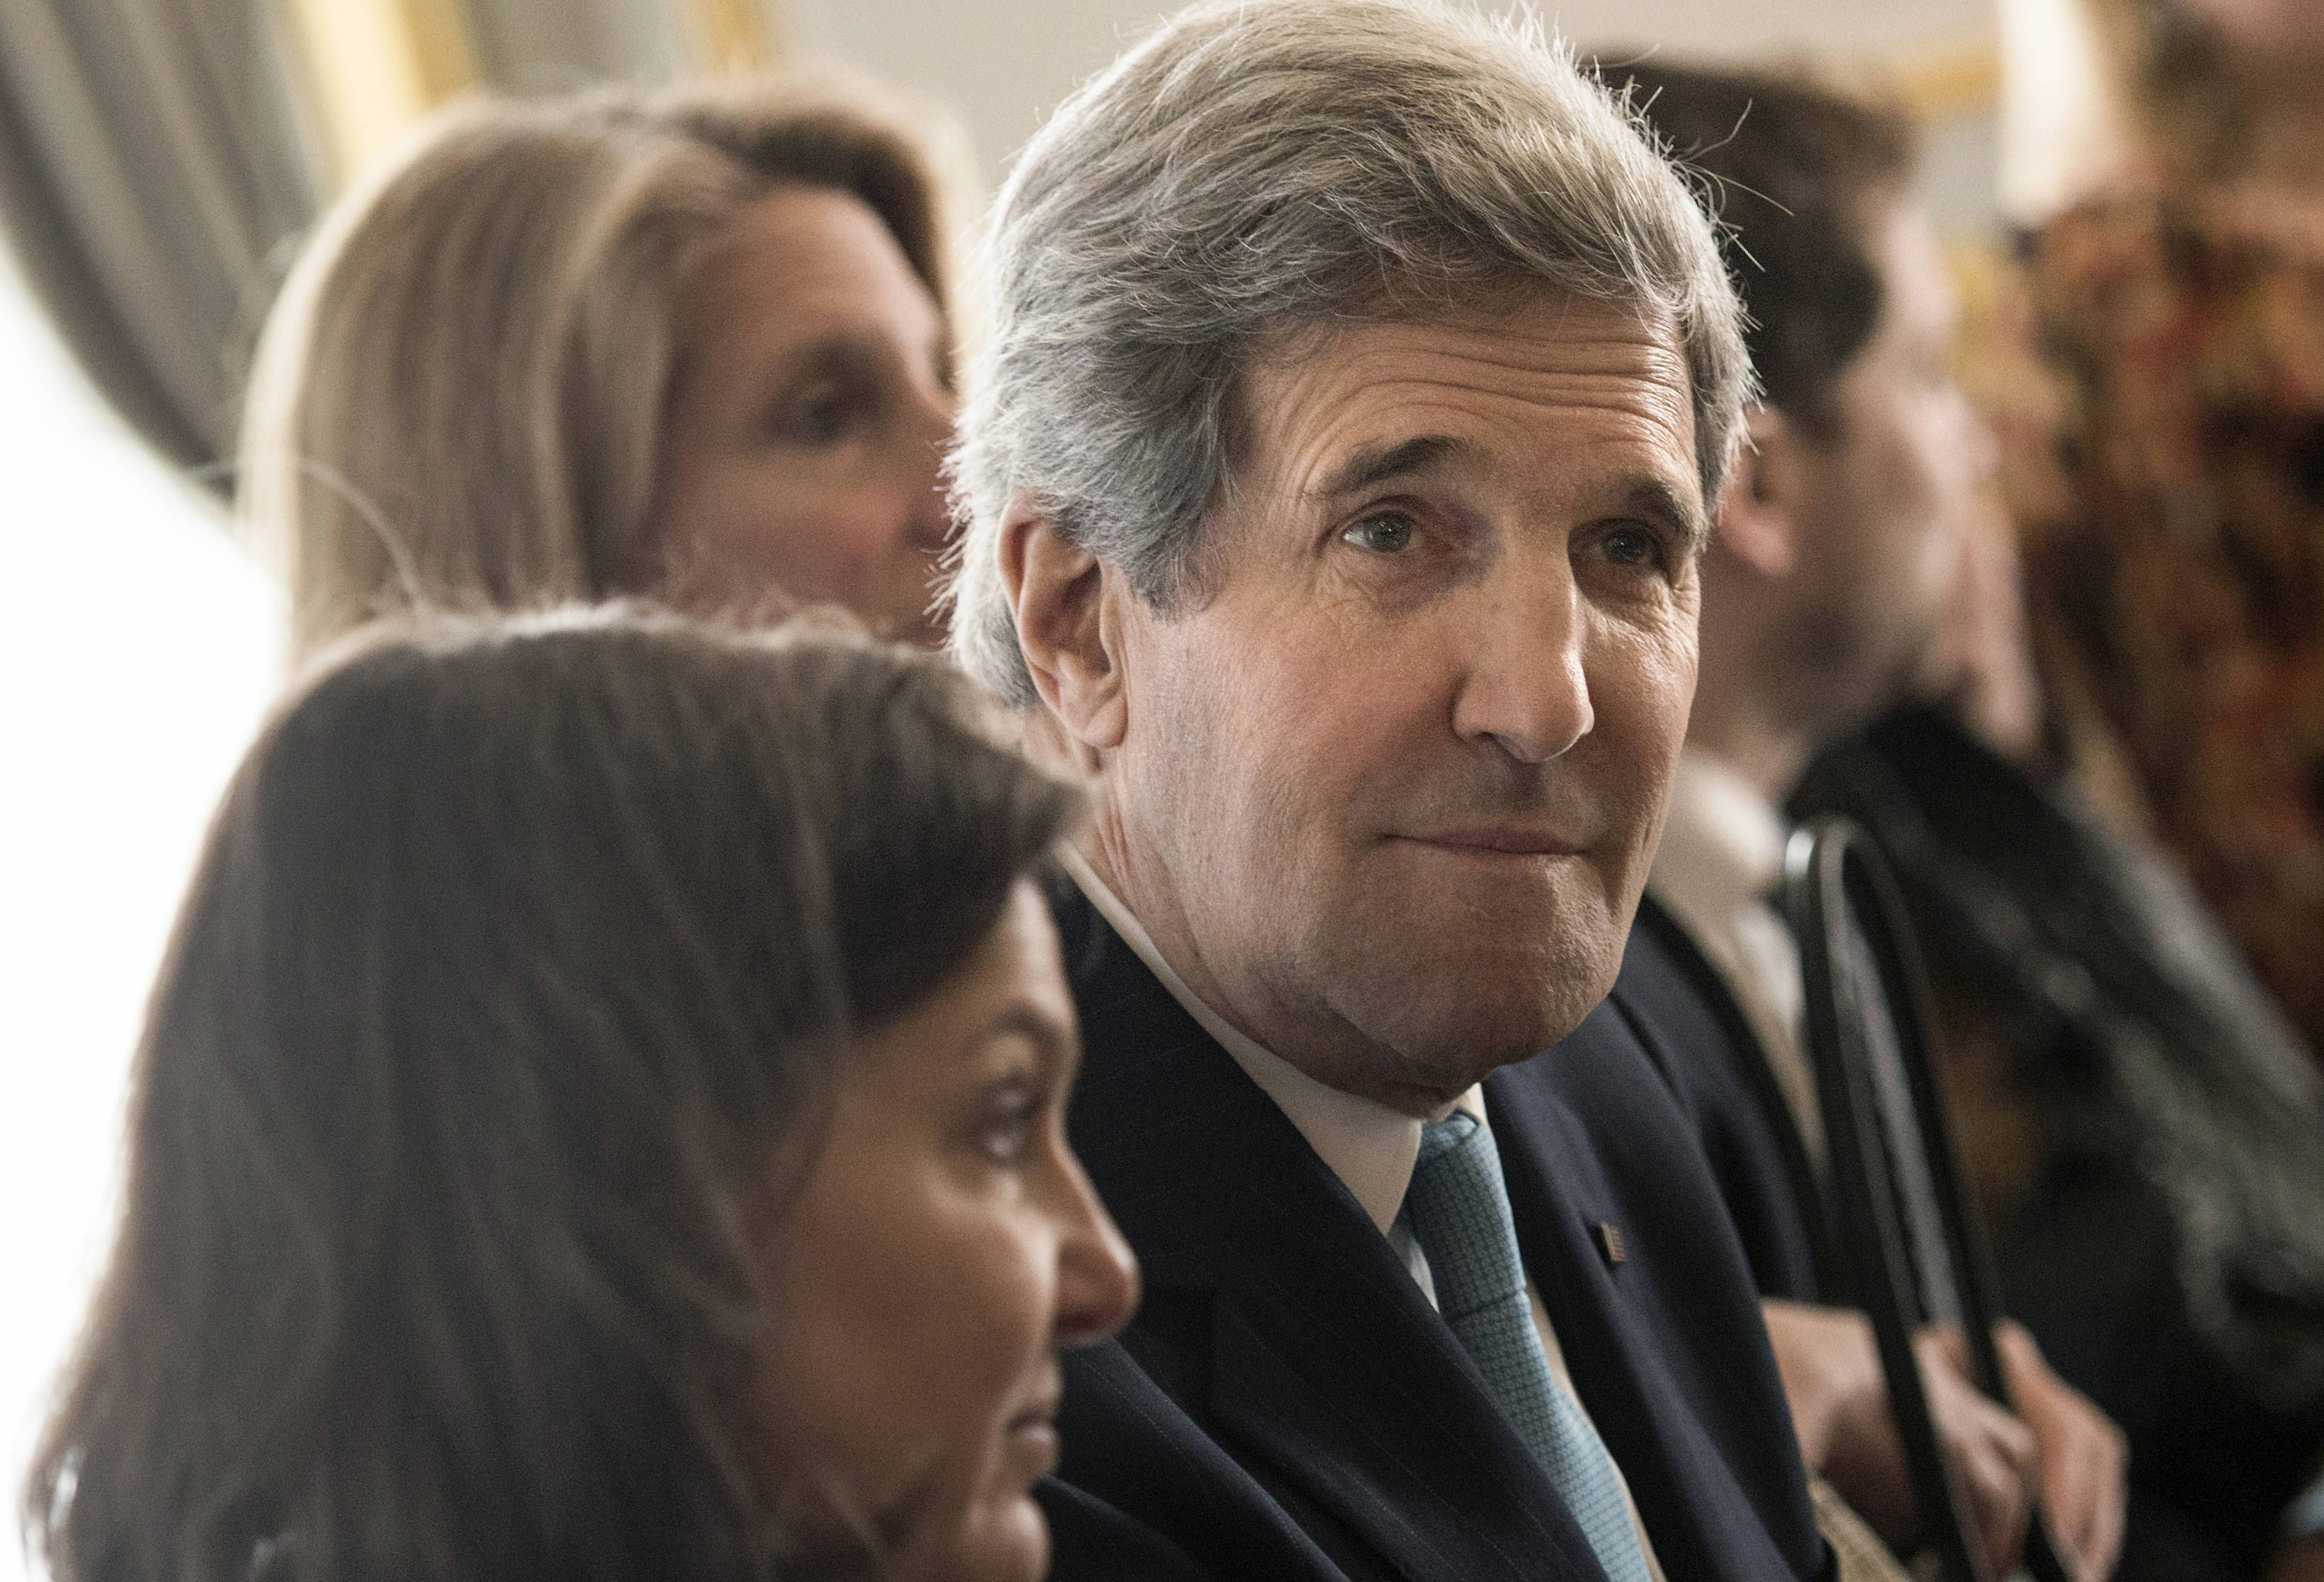 U.S. Secretary of State John Kerry flew to London on Friday to meet with Russian Foreign Minister Sergey Lavrov in a last-minute bid to stave off a new chapter in the East-West crisis over Ukraine.